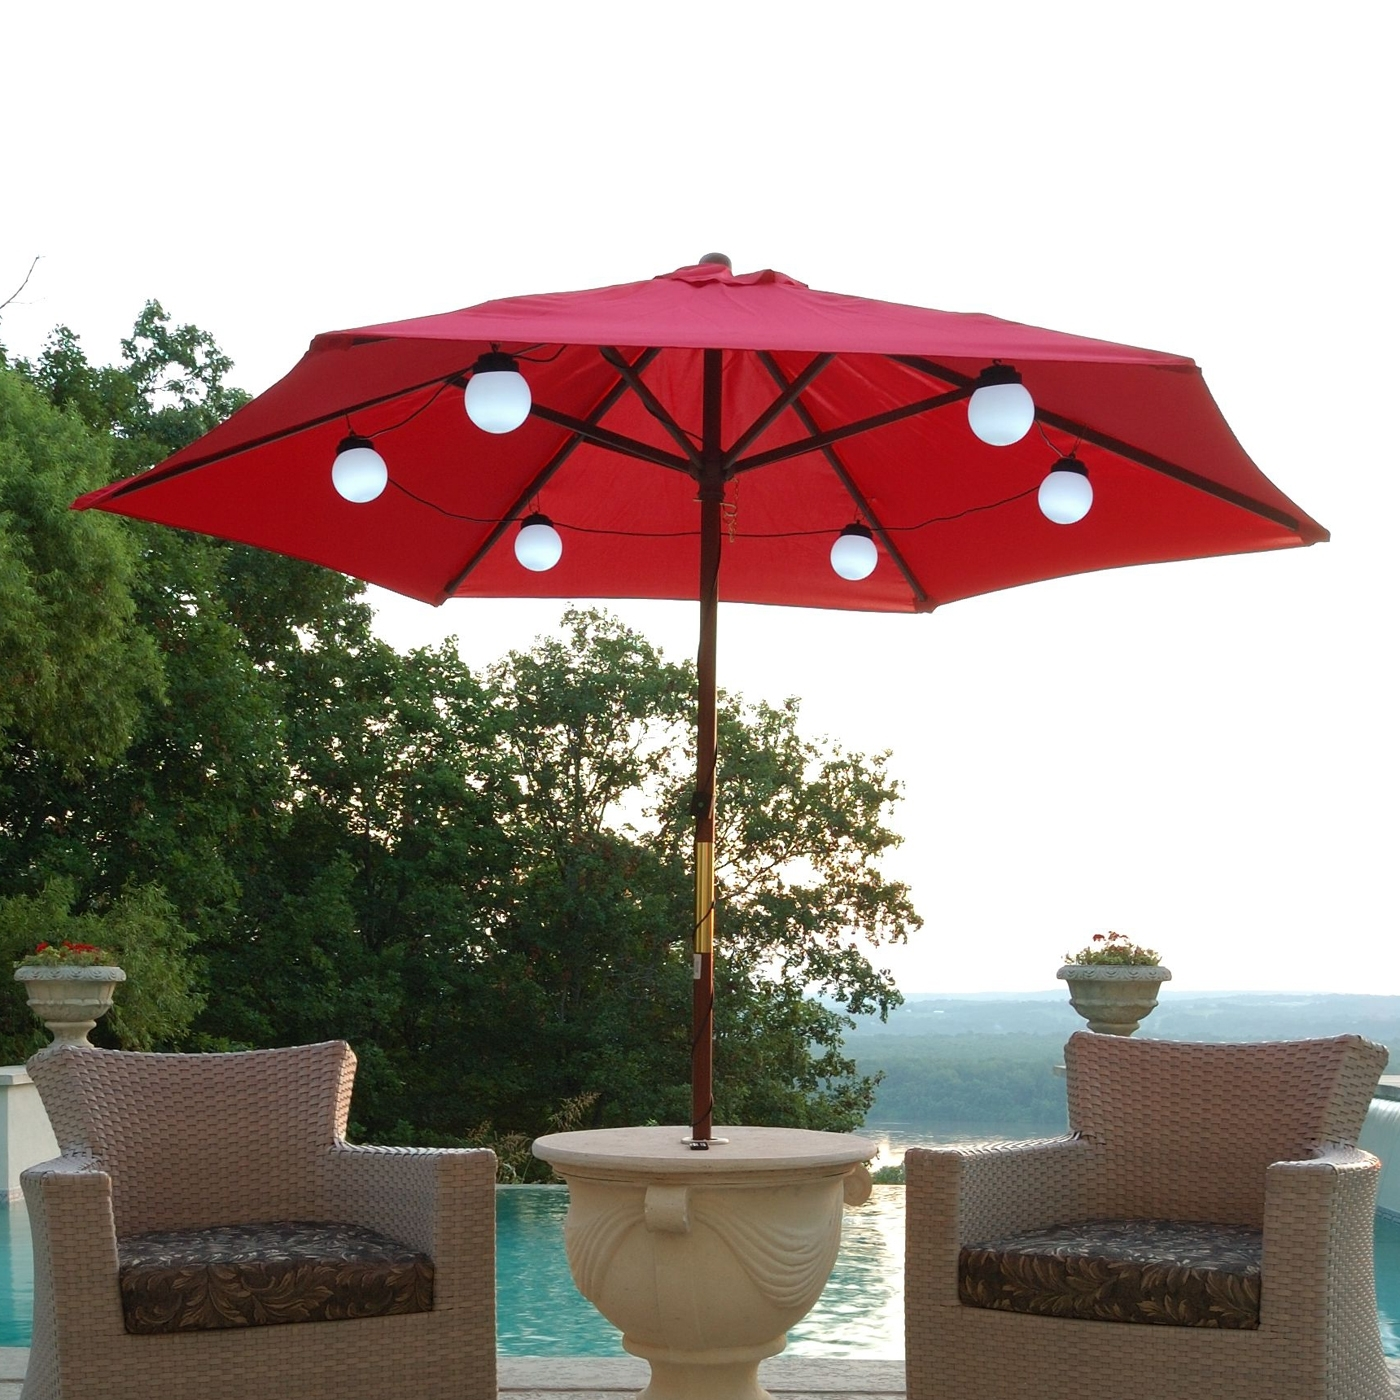 Latest Patio Living Concepts 080 Bright White Led Solar Powered Umbrella Intended For Red Outdoor Table Lanterns (View 18 of 20)